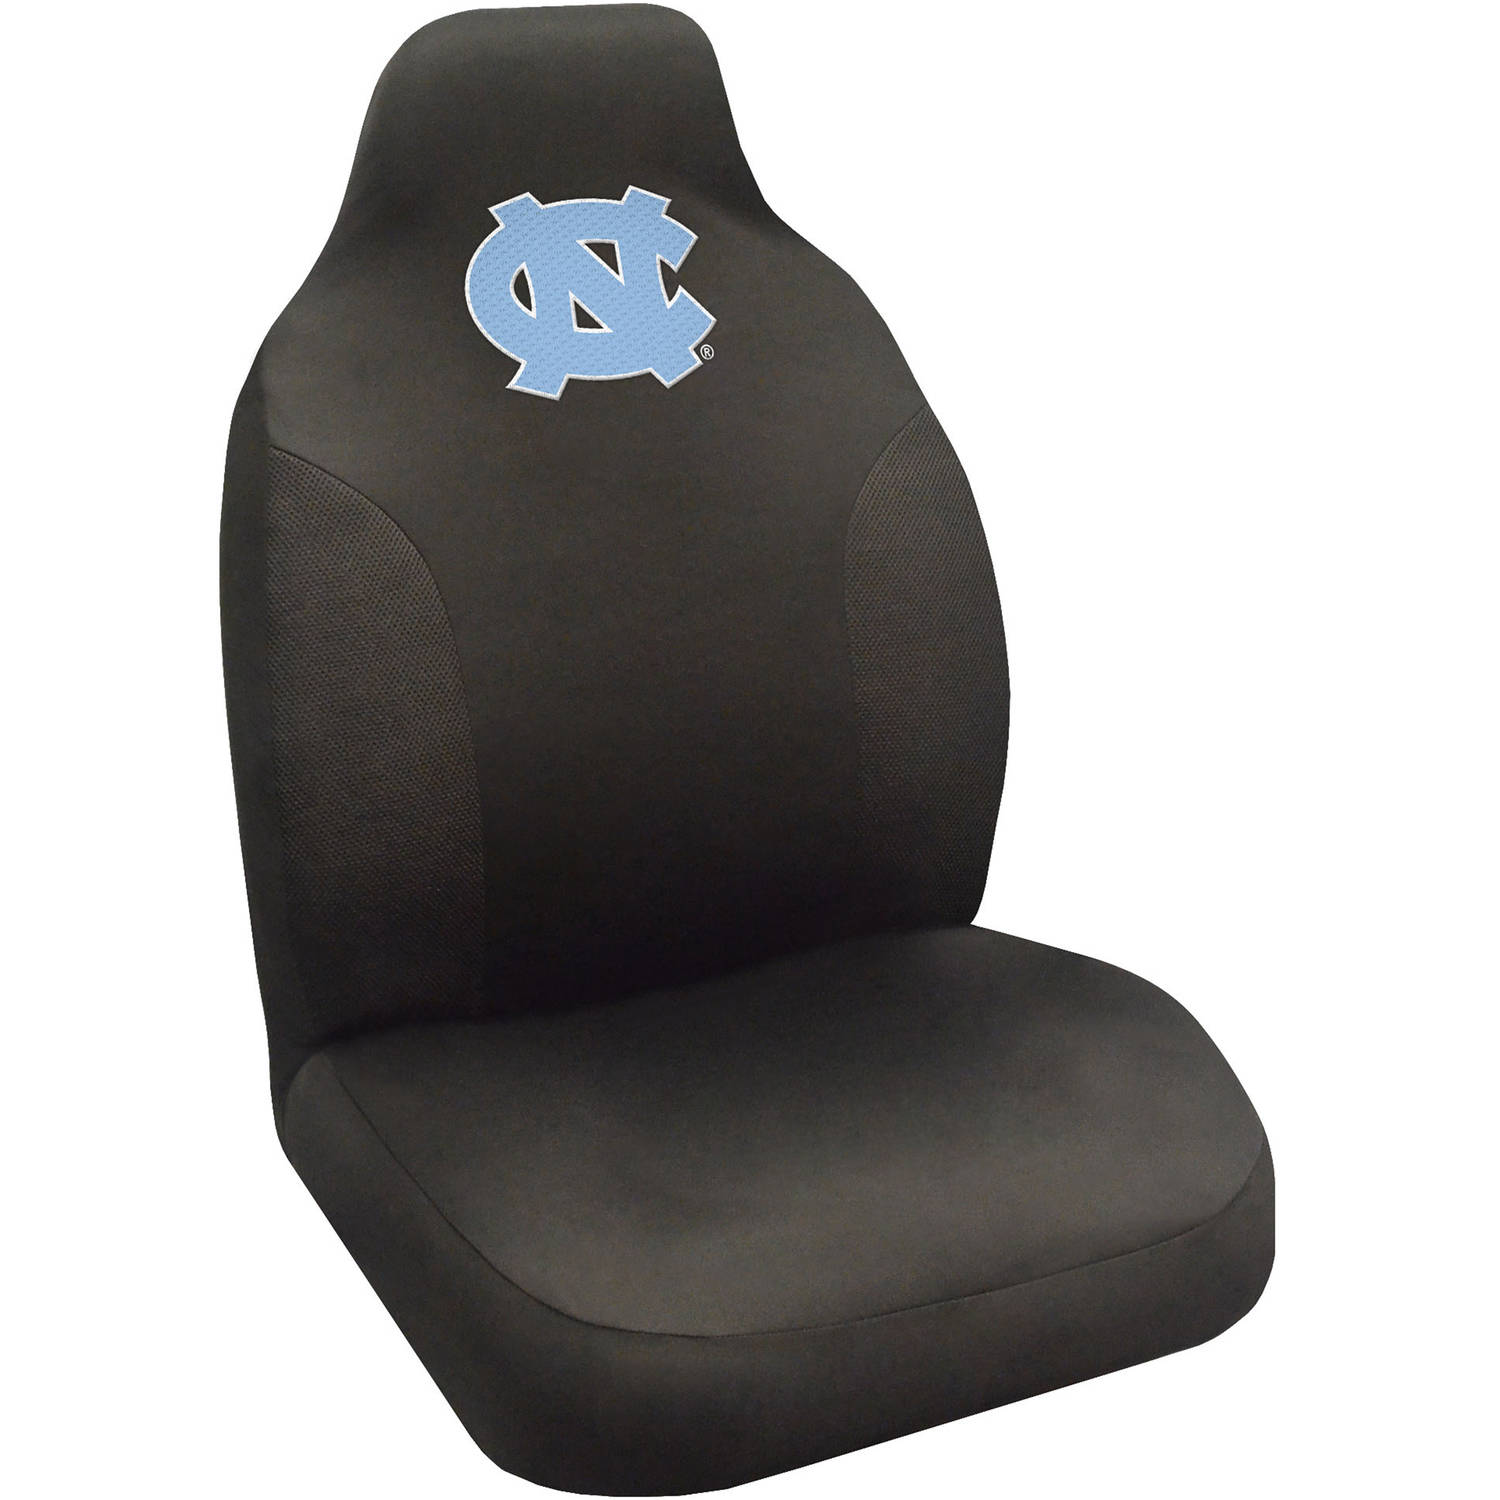 UNC University of North Carolina Seat Covers